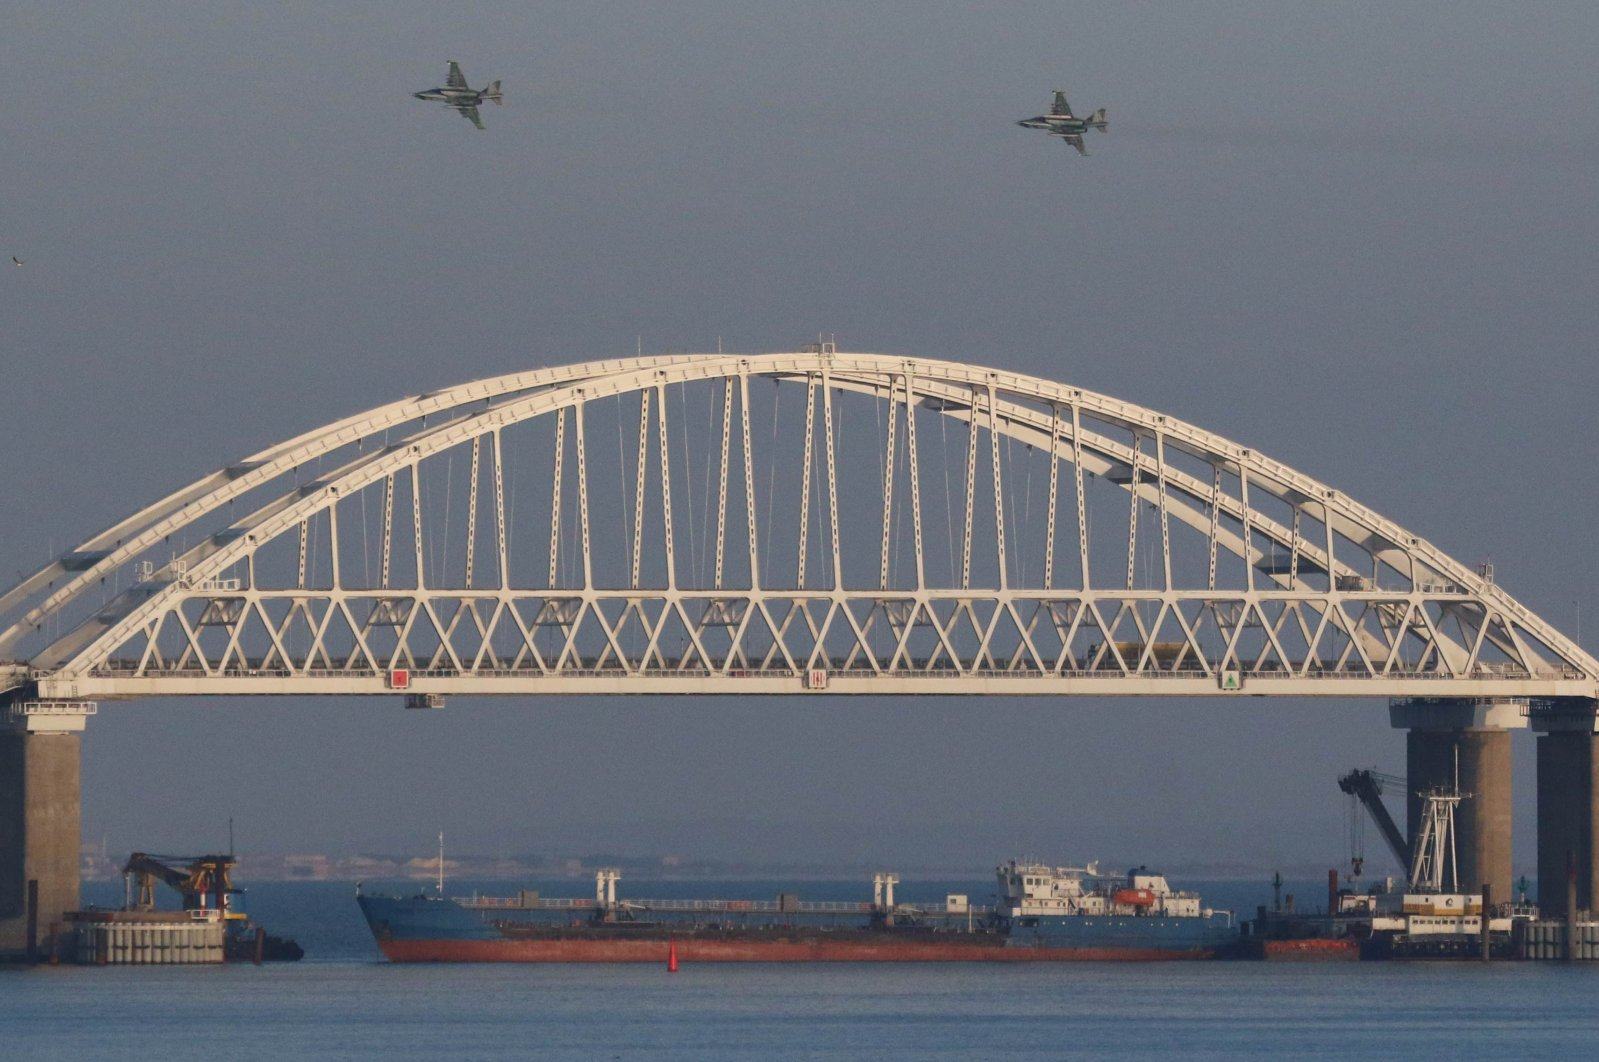 Russian jet fighters fly over a bridge connecting the Russian mainland with the Crimean Peninsula with a cargo ship beneath it after three Ukrainian navy vessels were stopped by Russia from entering the Sea of Azov via the Kerch Strait in the Black Sea, Crimea on Nov. 25, 2018. (Reuters Photo)